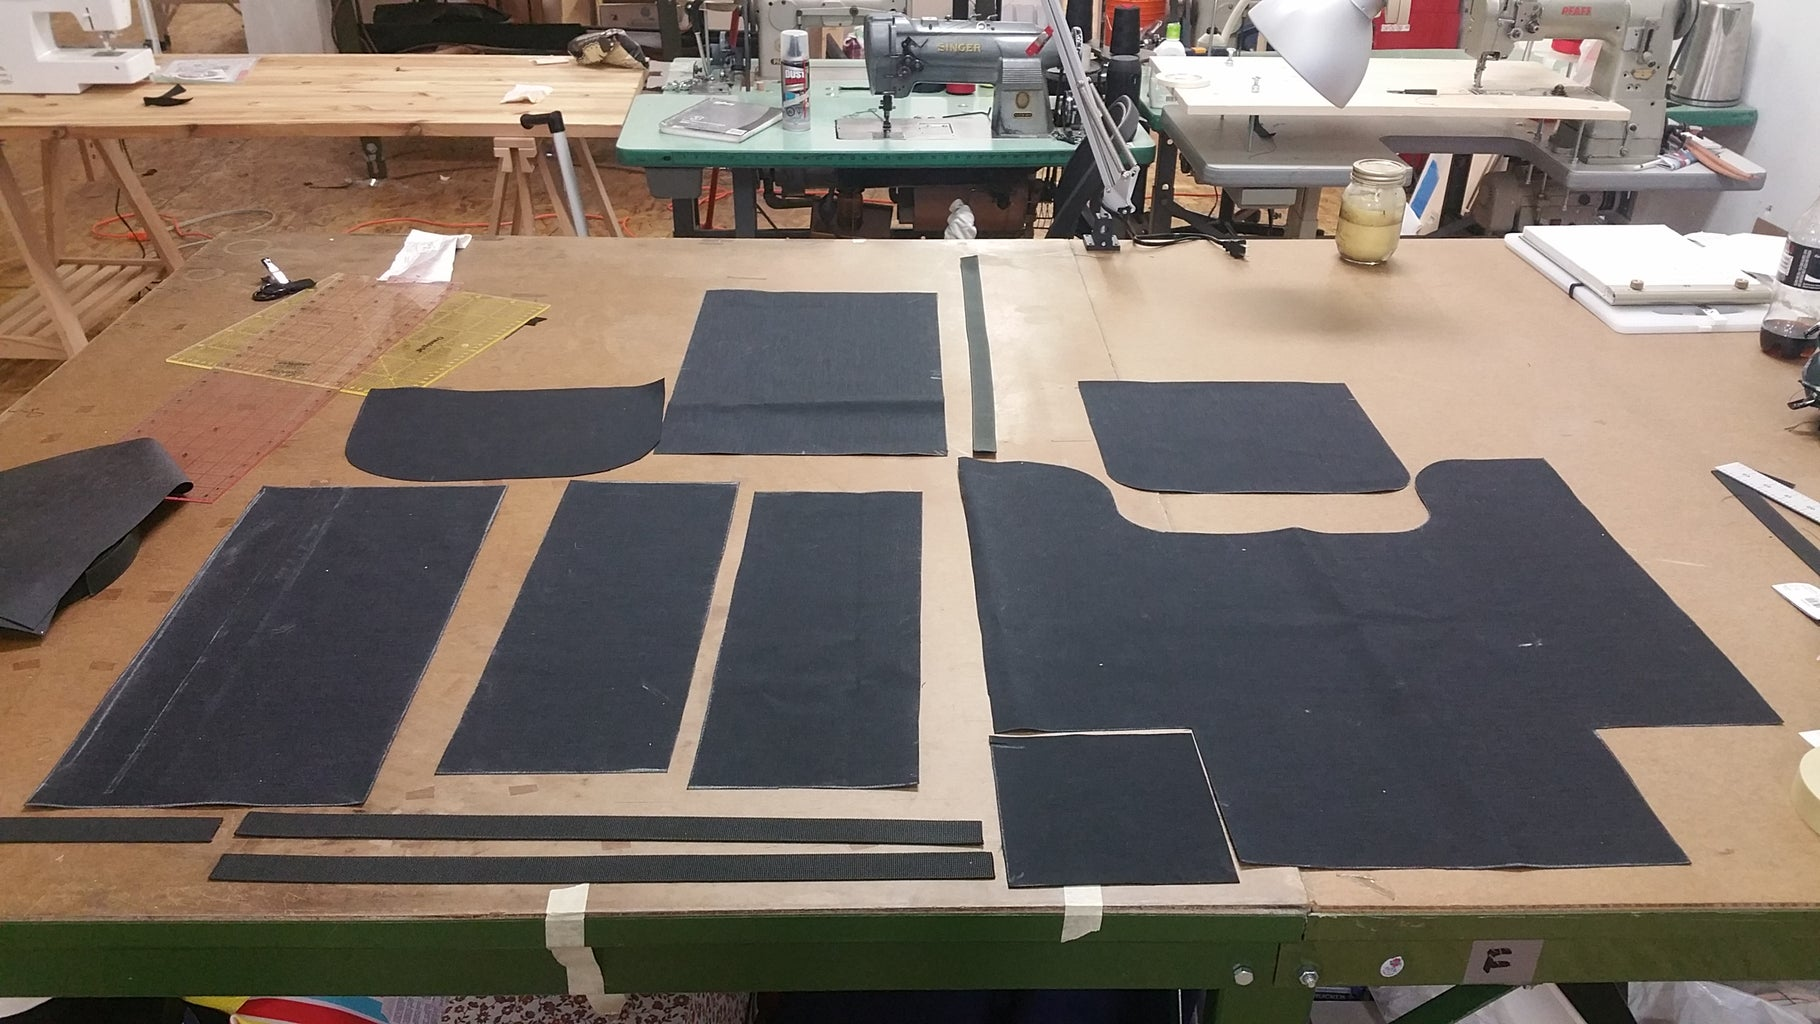 Cutting Fabric and Extra Pieces